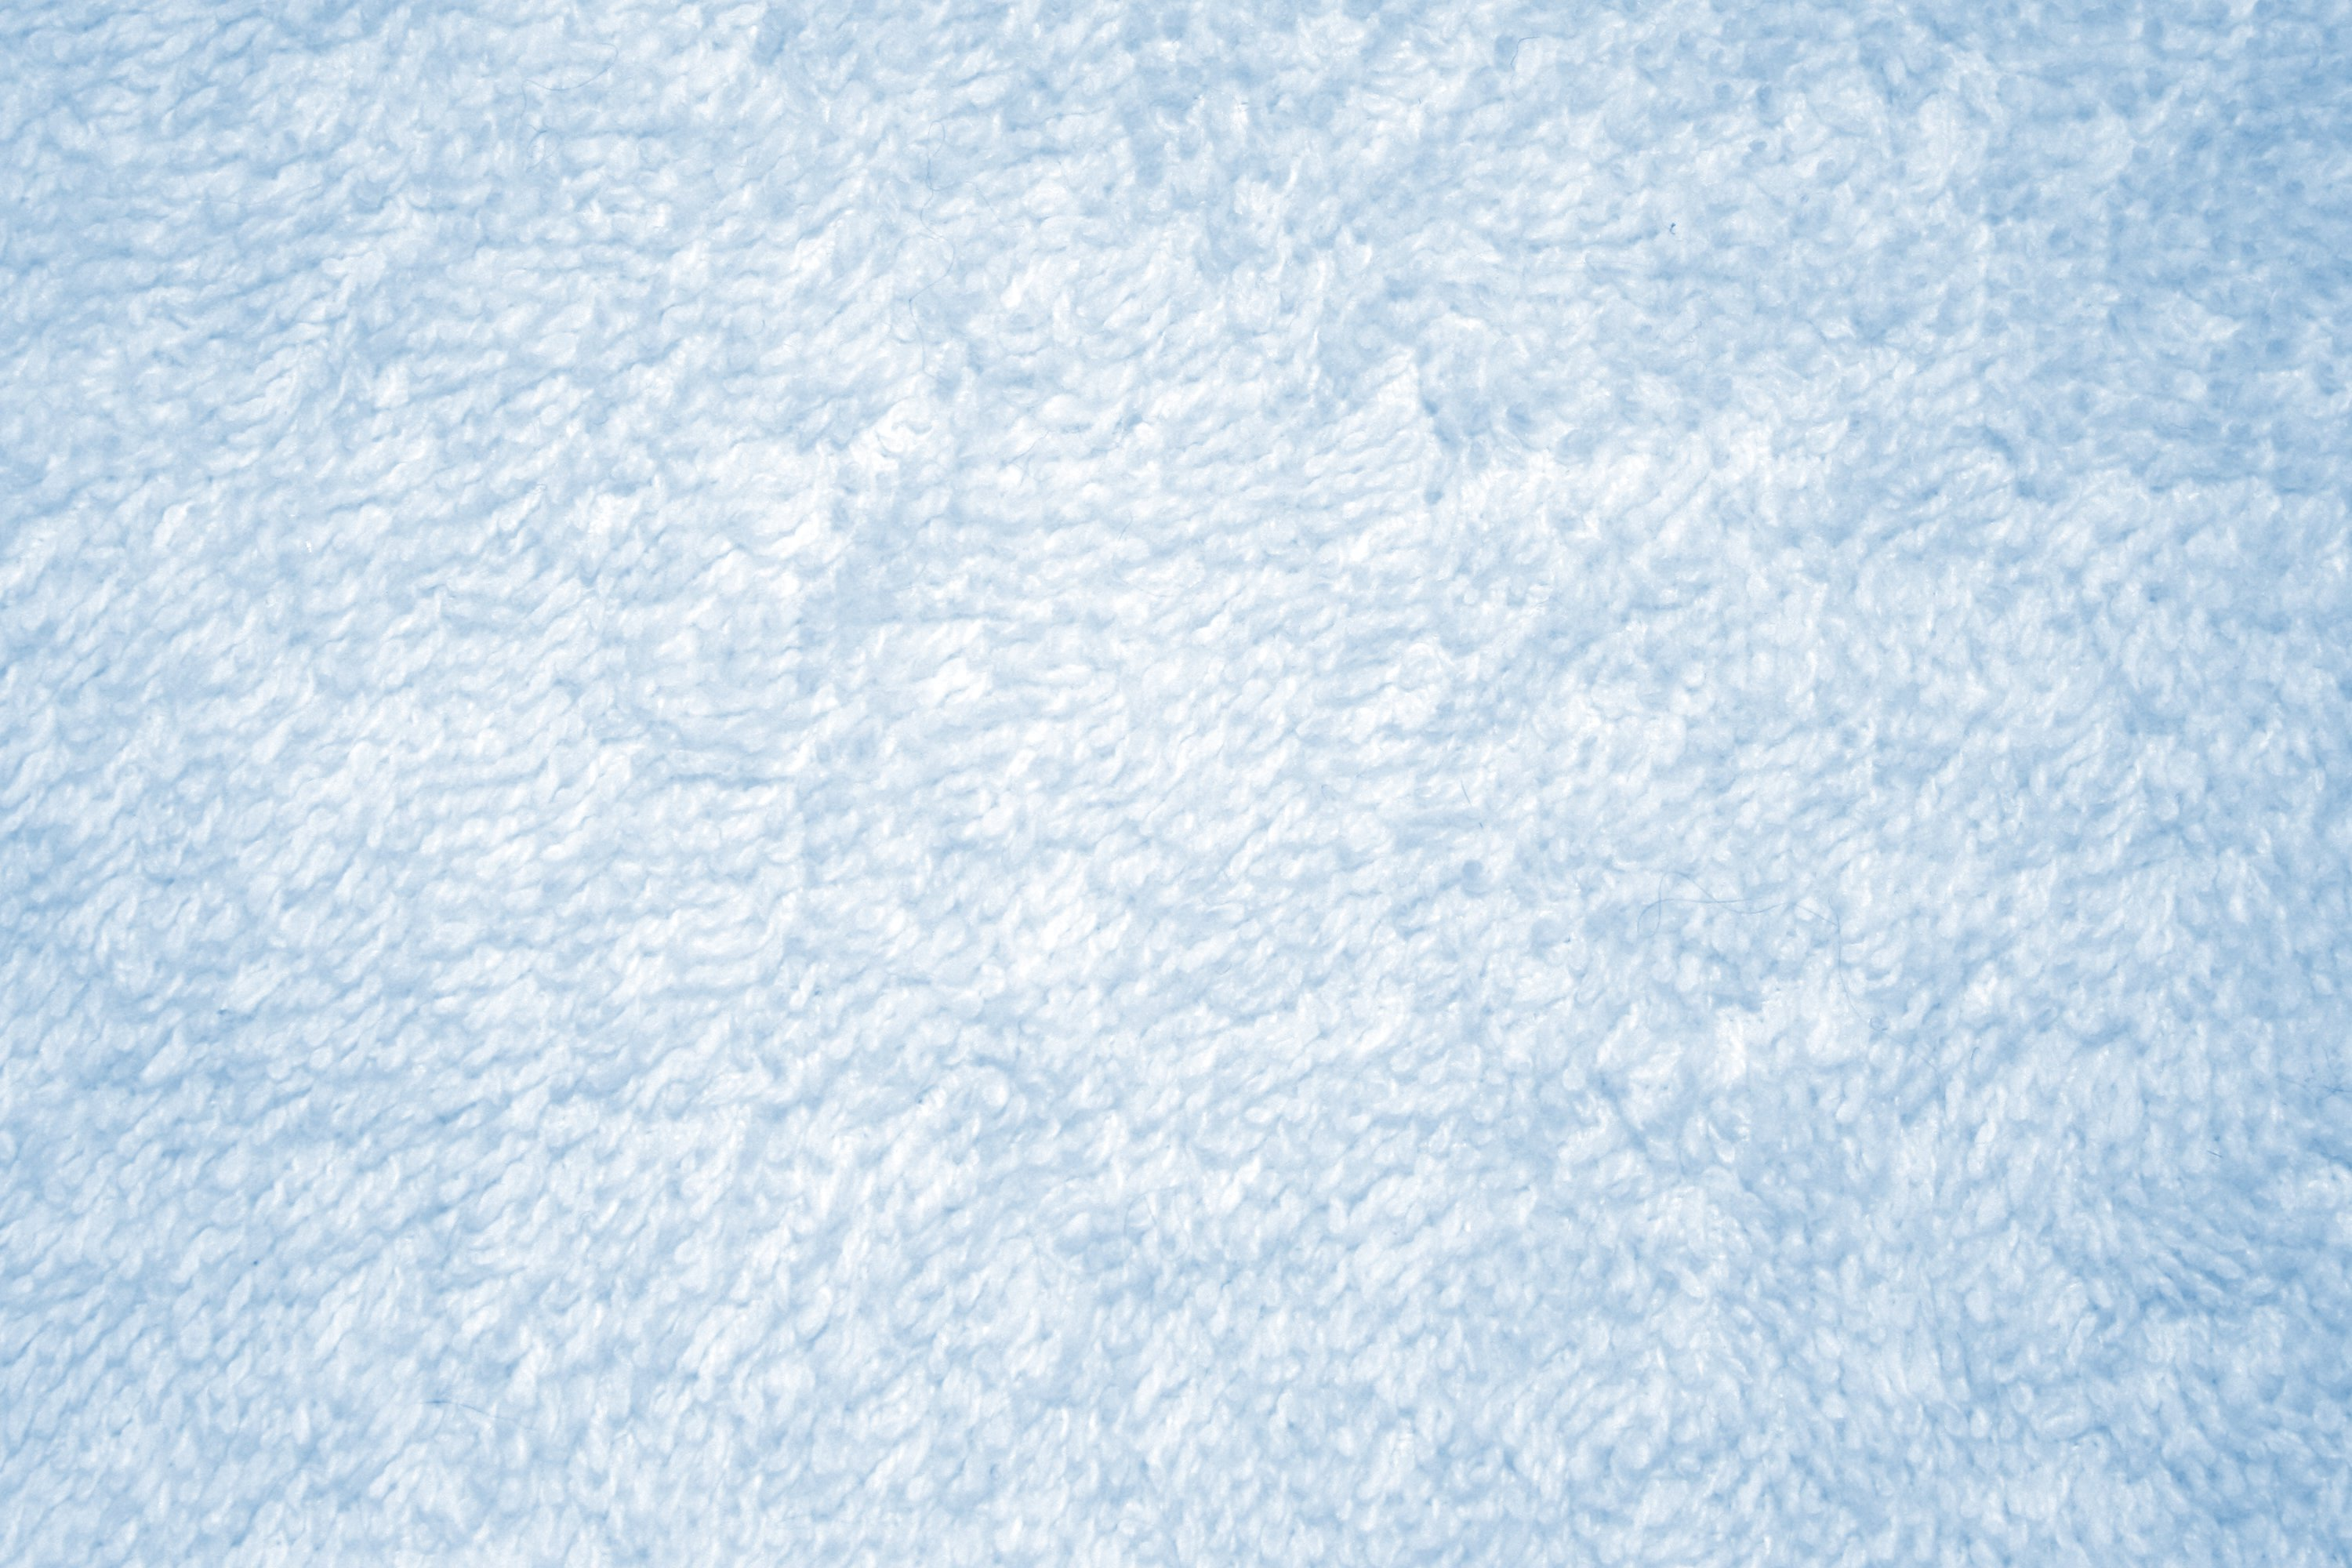 light blue background texture page 2 light blue background texture 3000x2000